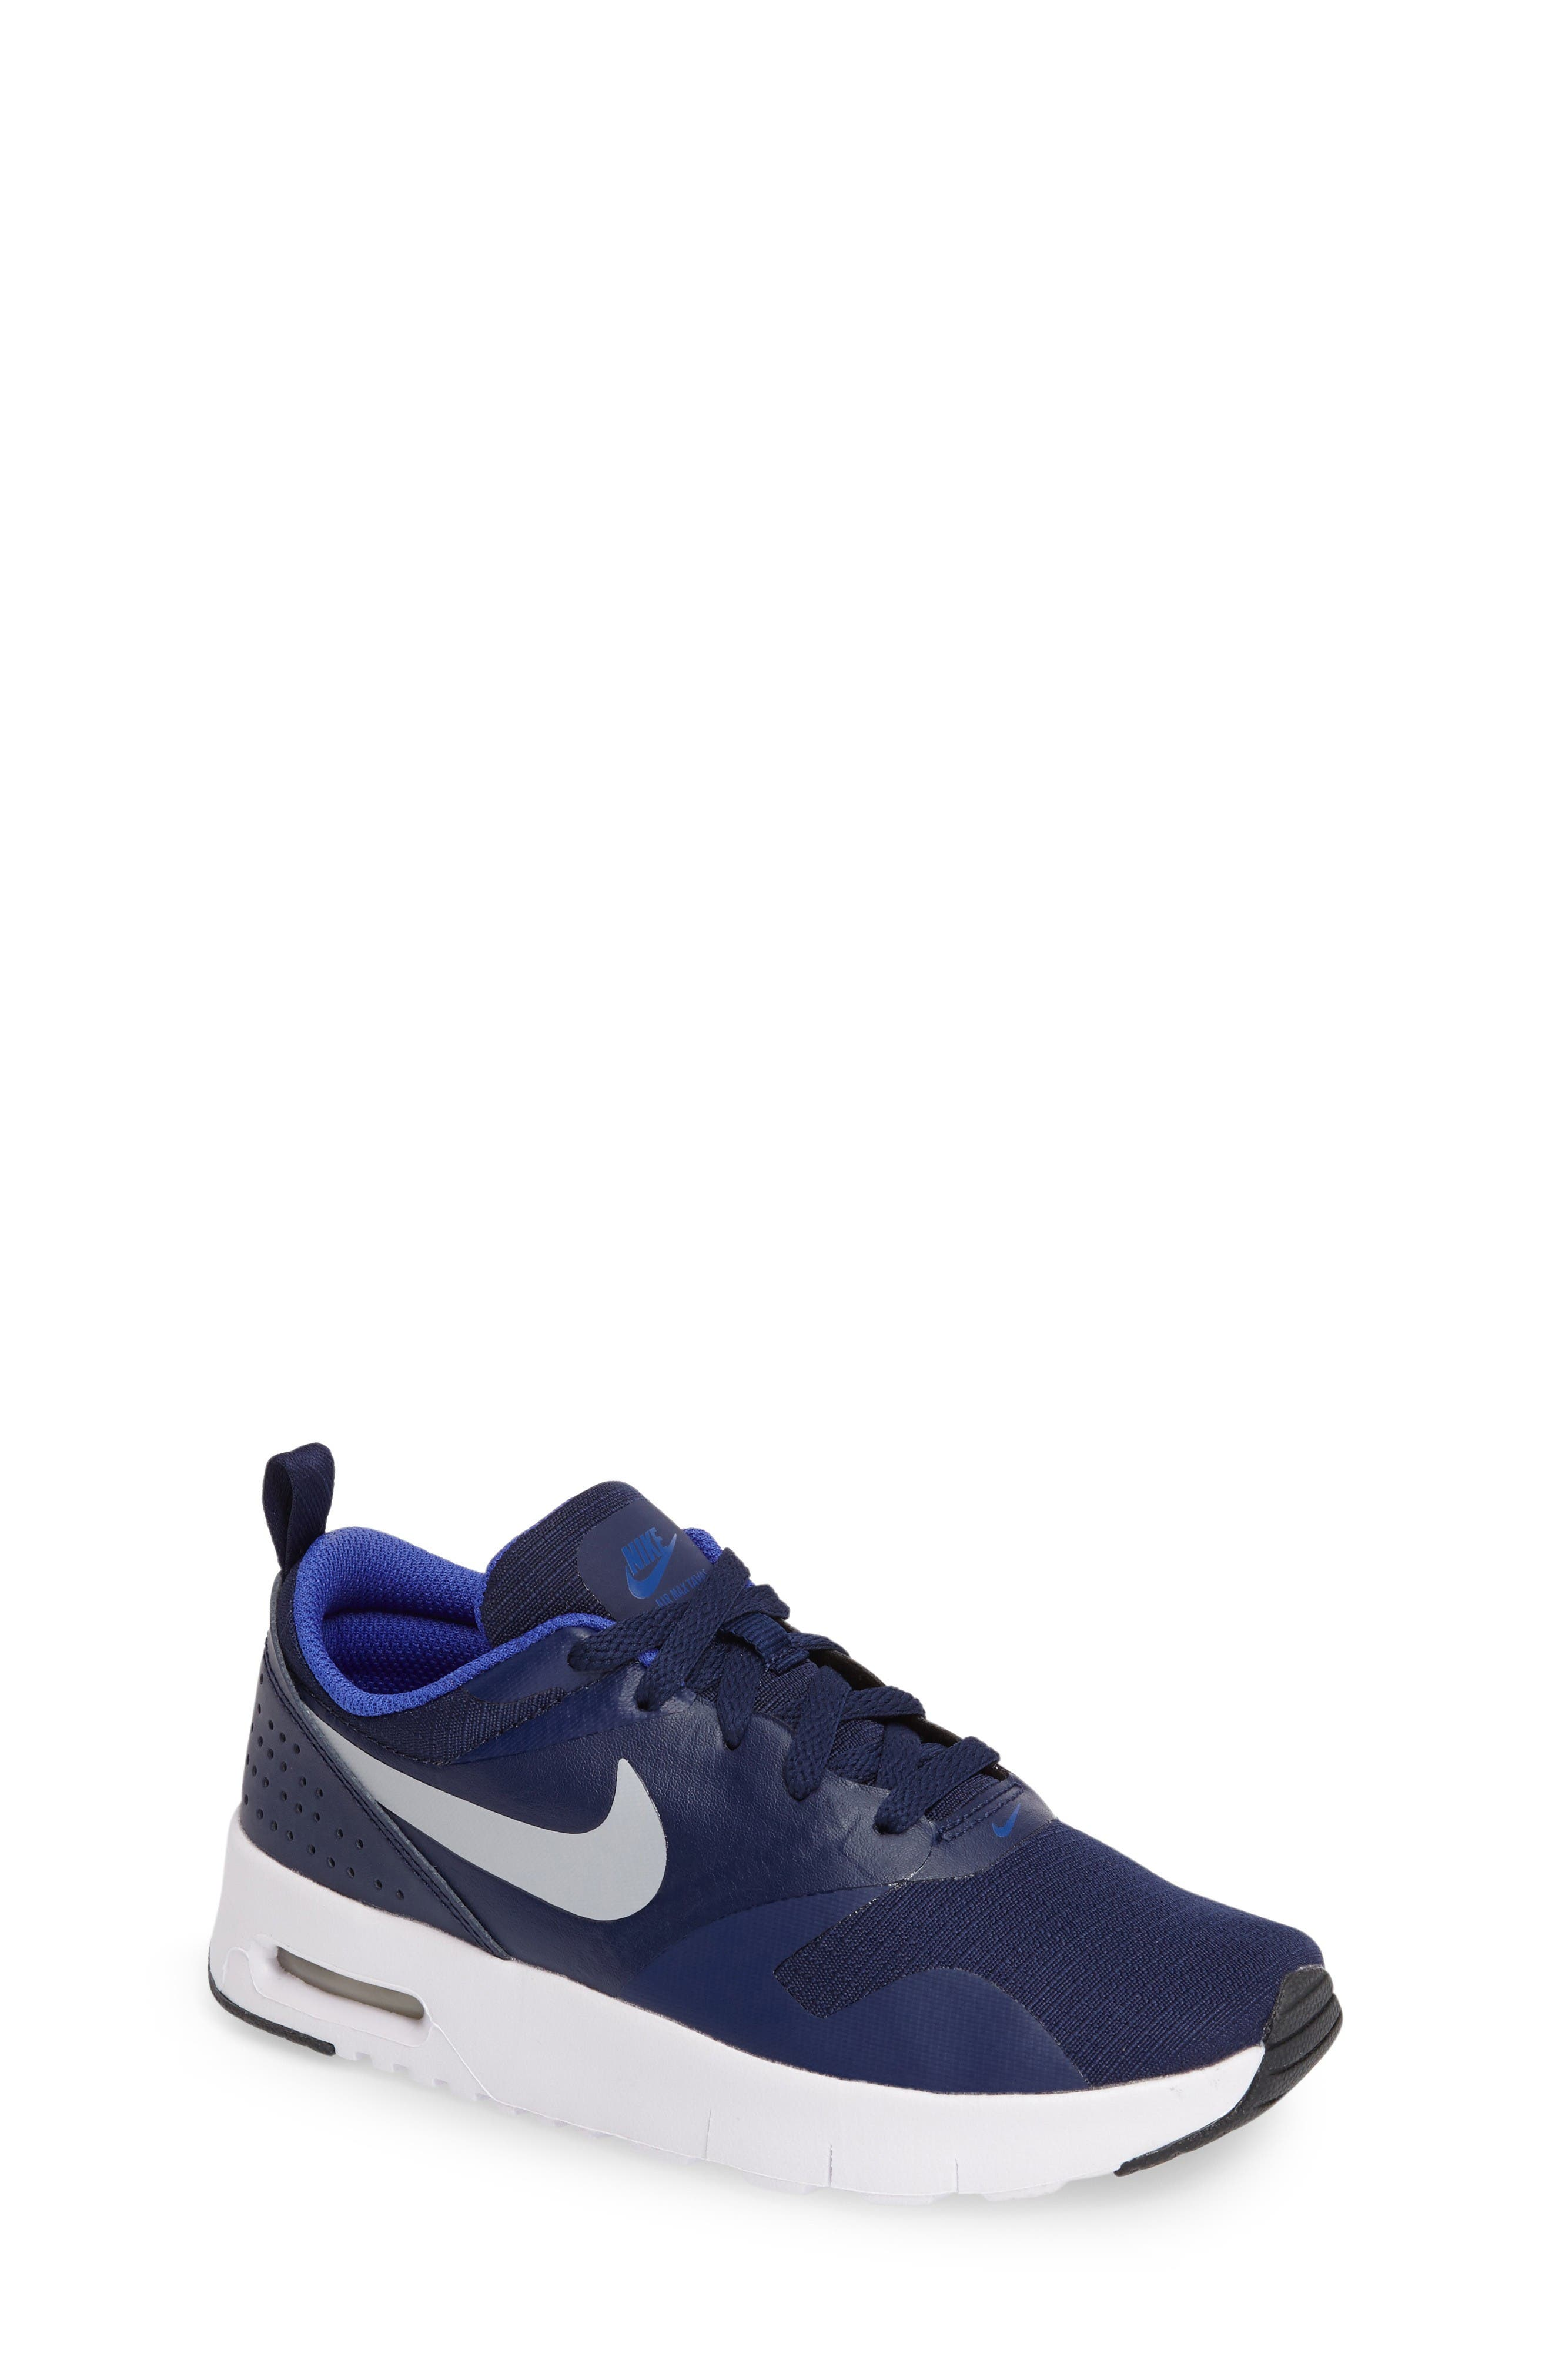 Main Image - Nike Air Max Tavas Sneaker (Walker, Toddler & Little Kid)